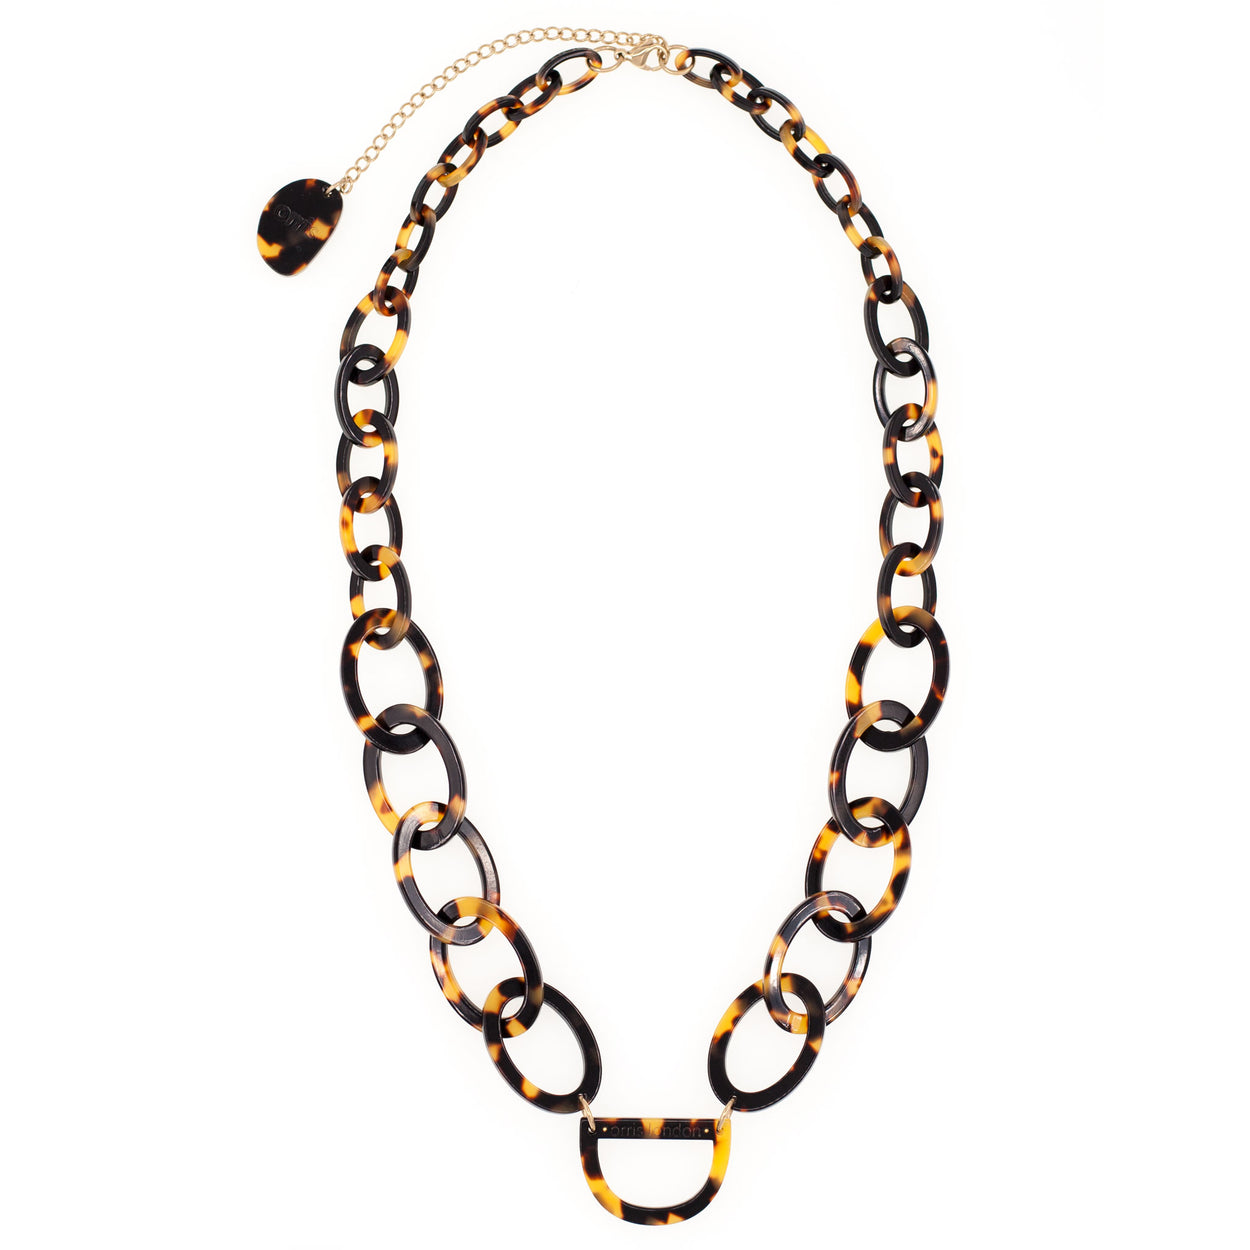 Original D Necklace | Tortoiseshell | Glasses Chain | RASSIN SHEN